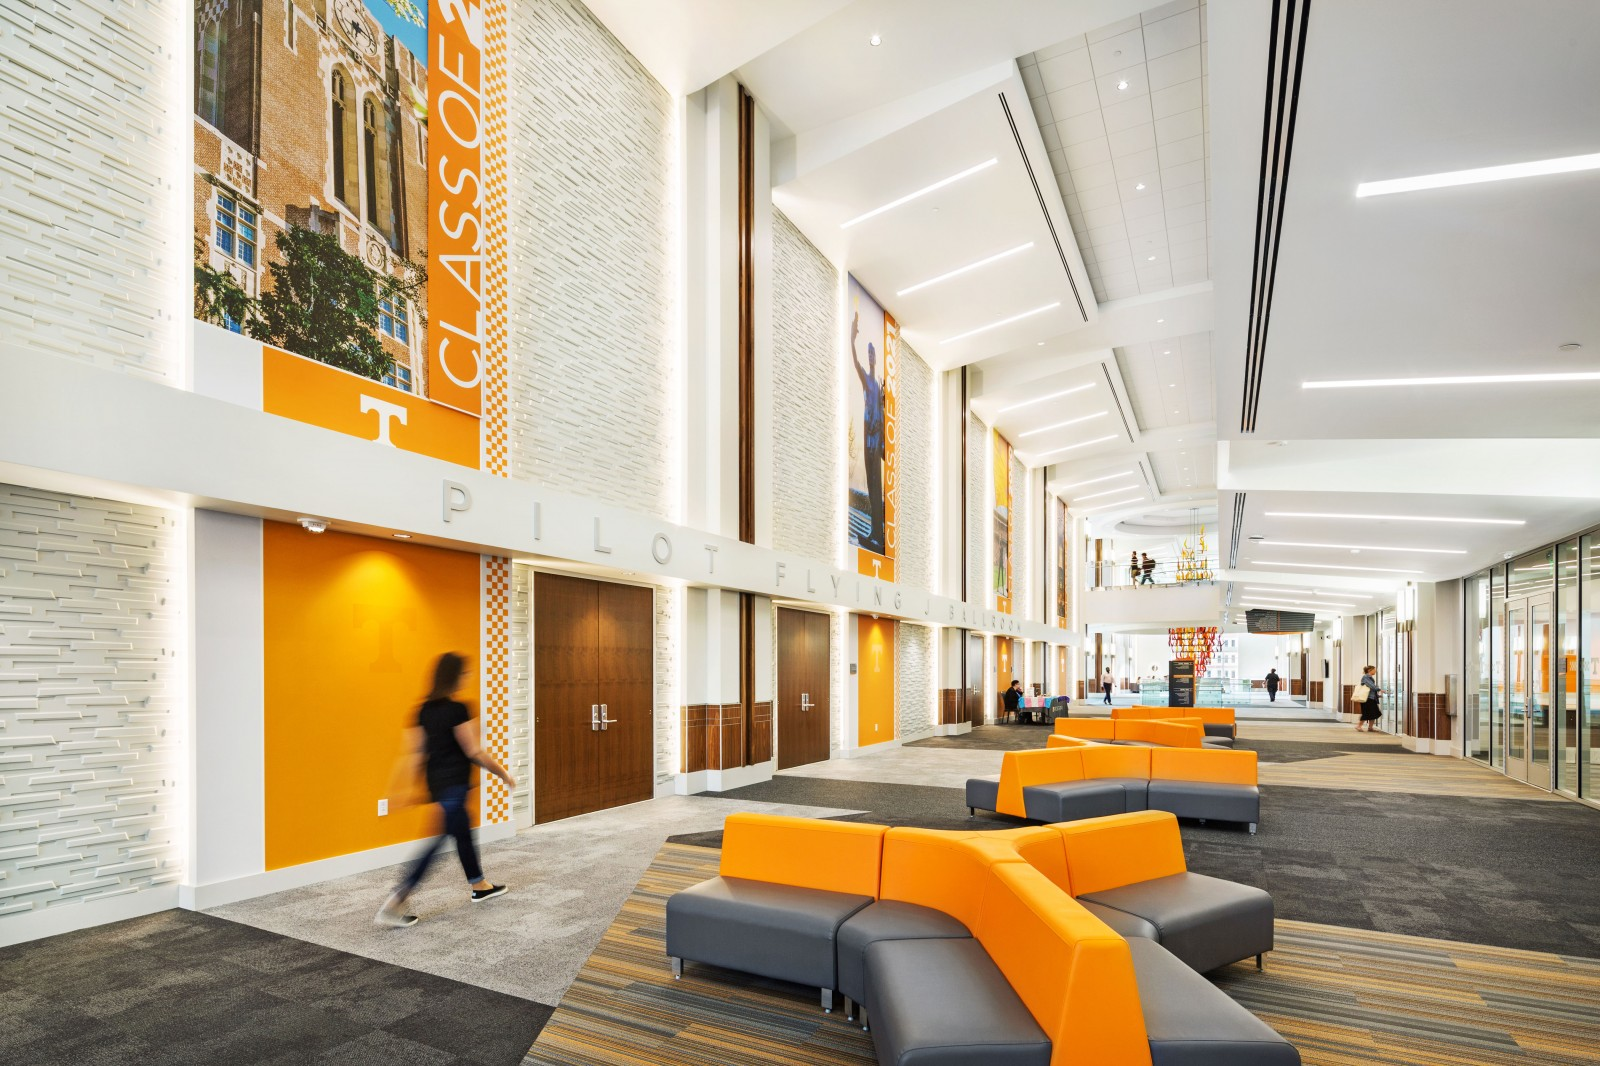 modern orange and gray furniture in the University of Tennessee student union